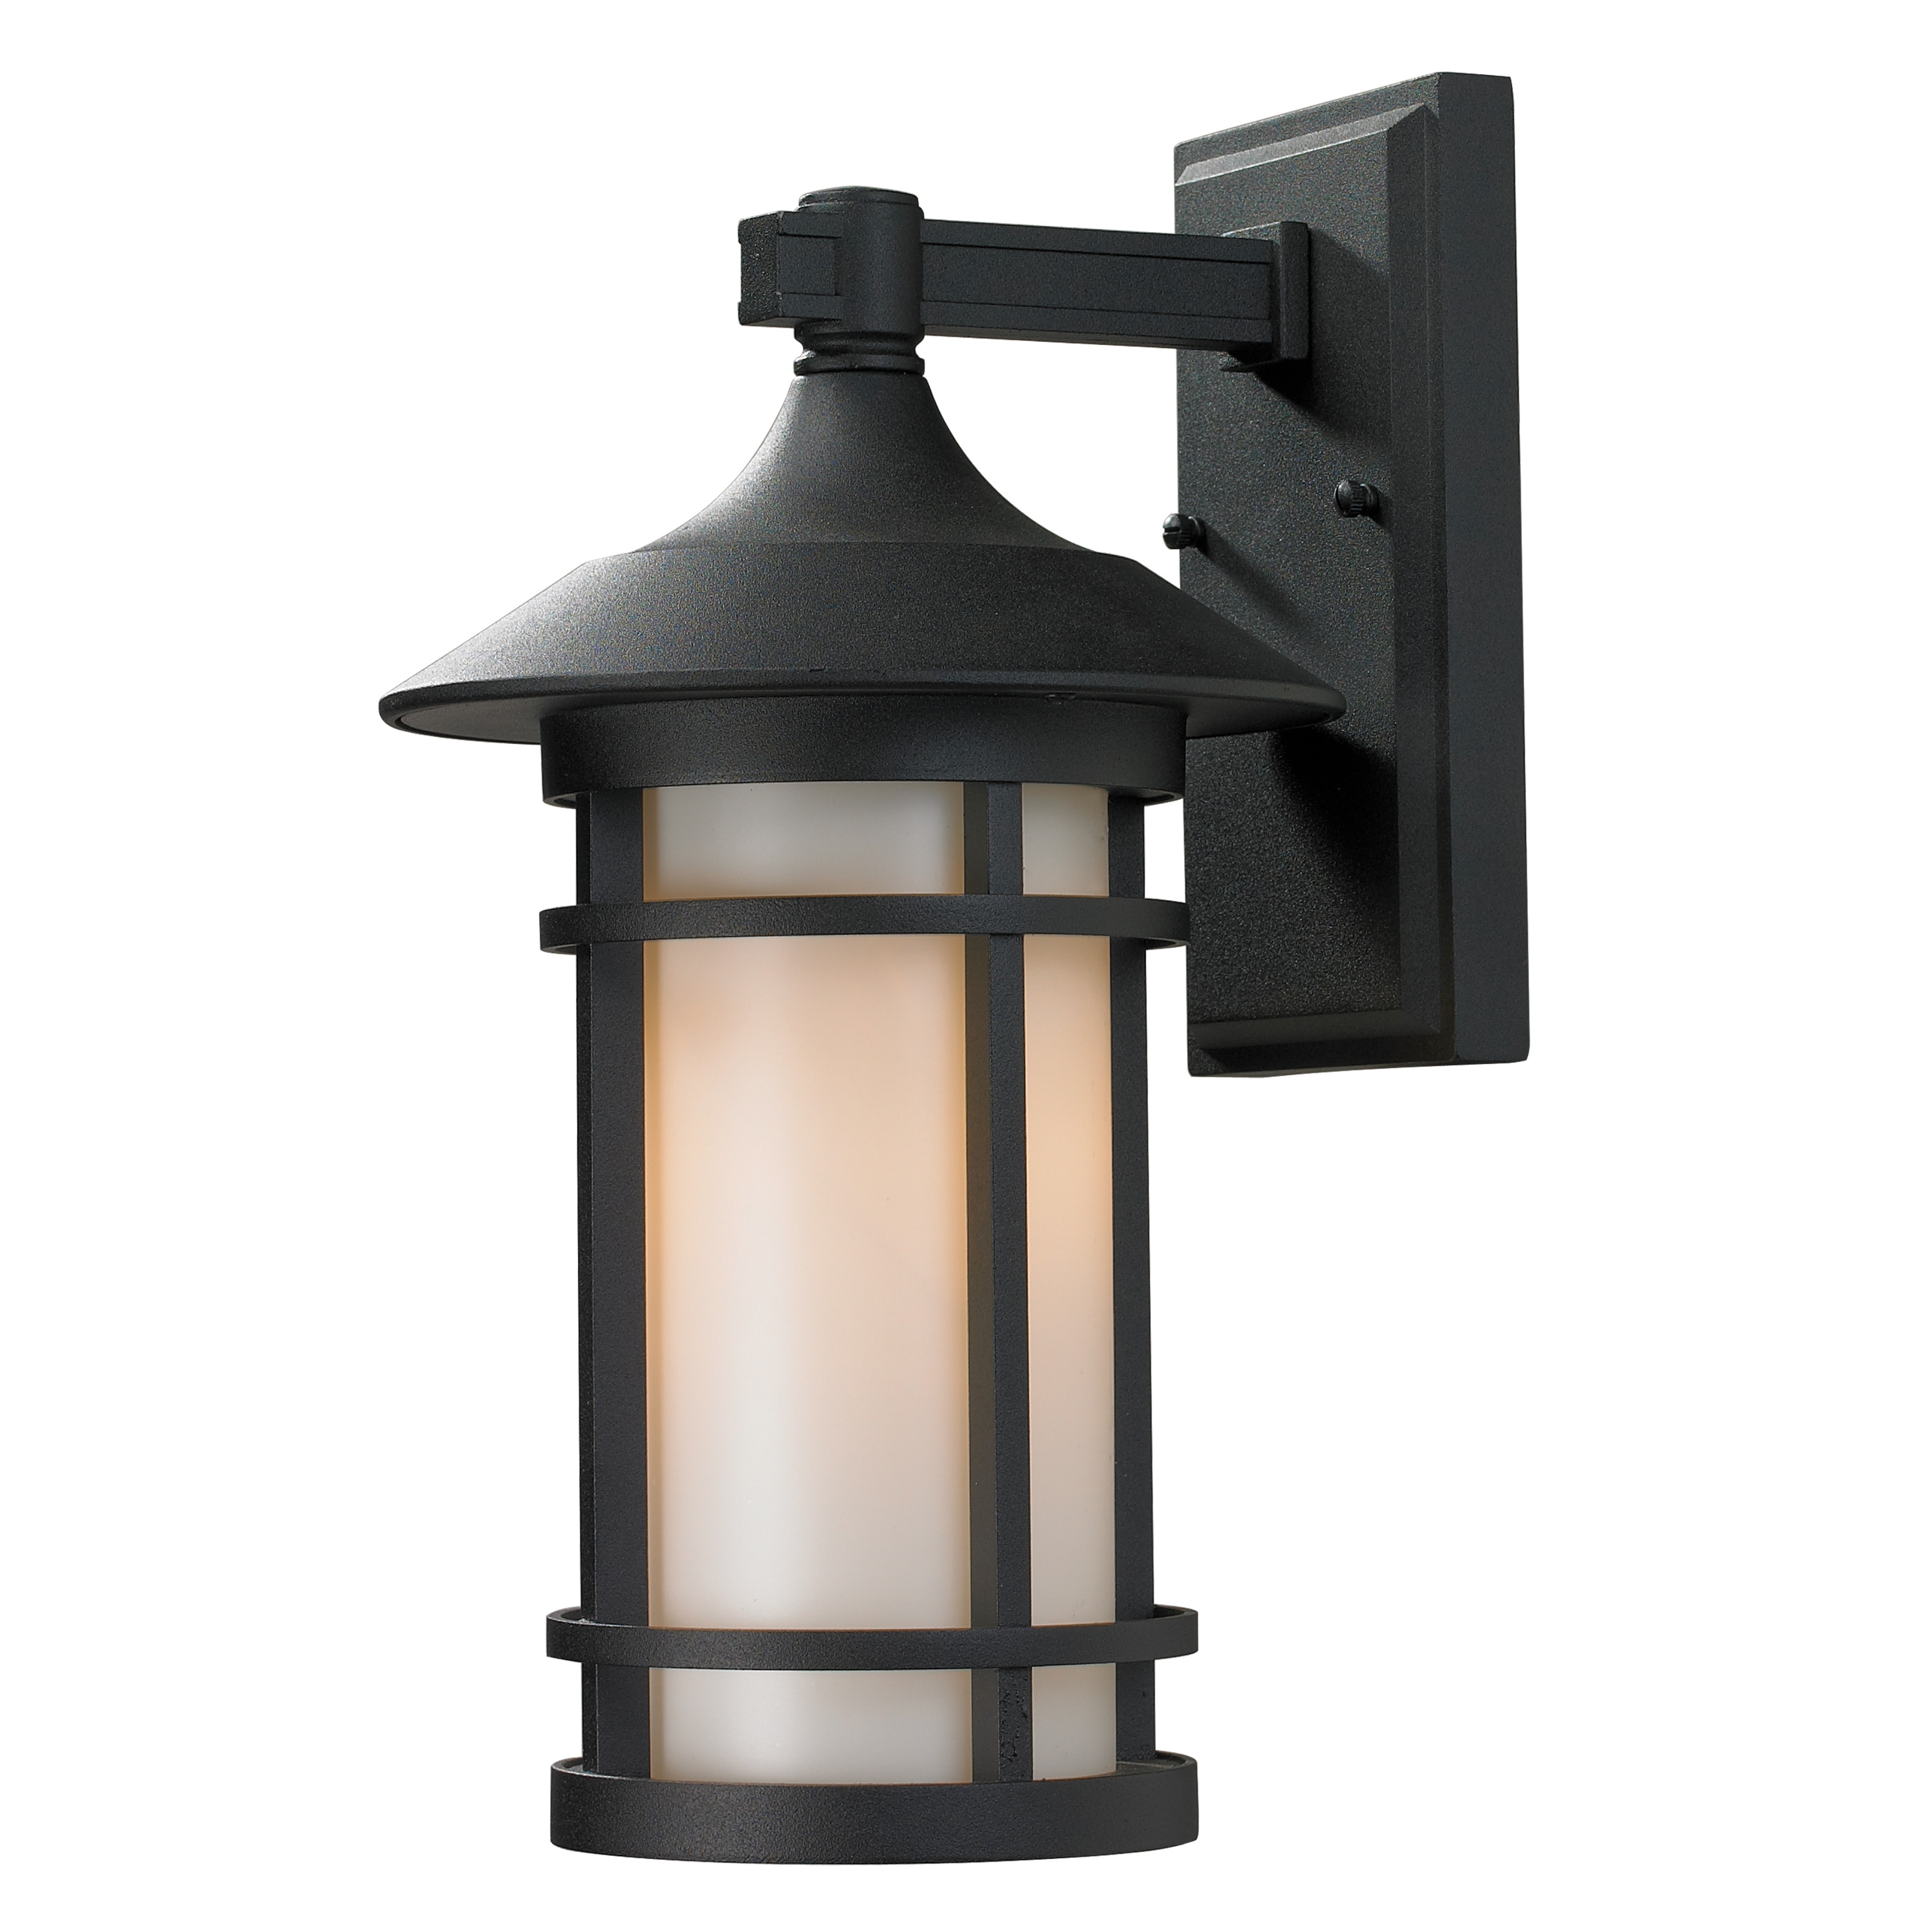 lite mission style outdoor wall light overstock shopping big